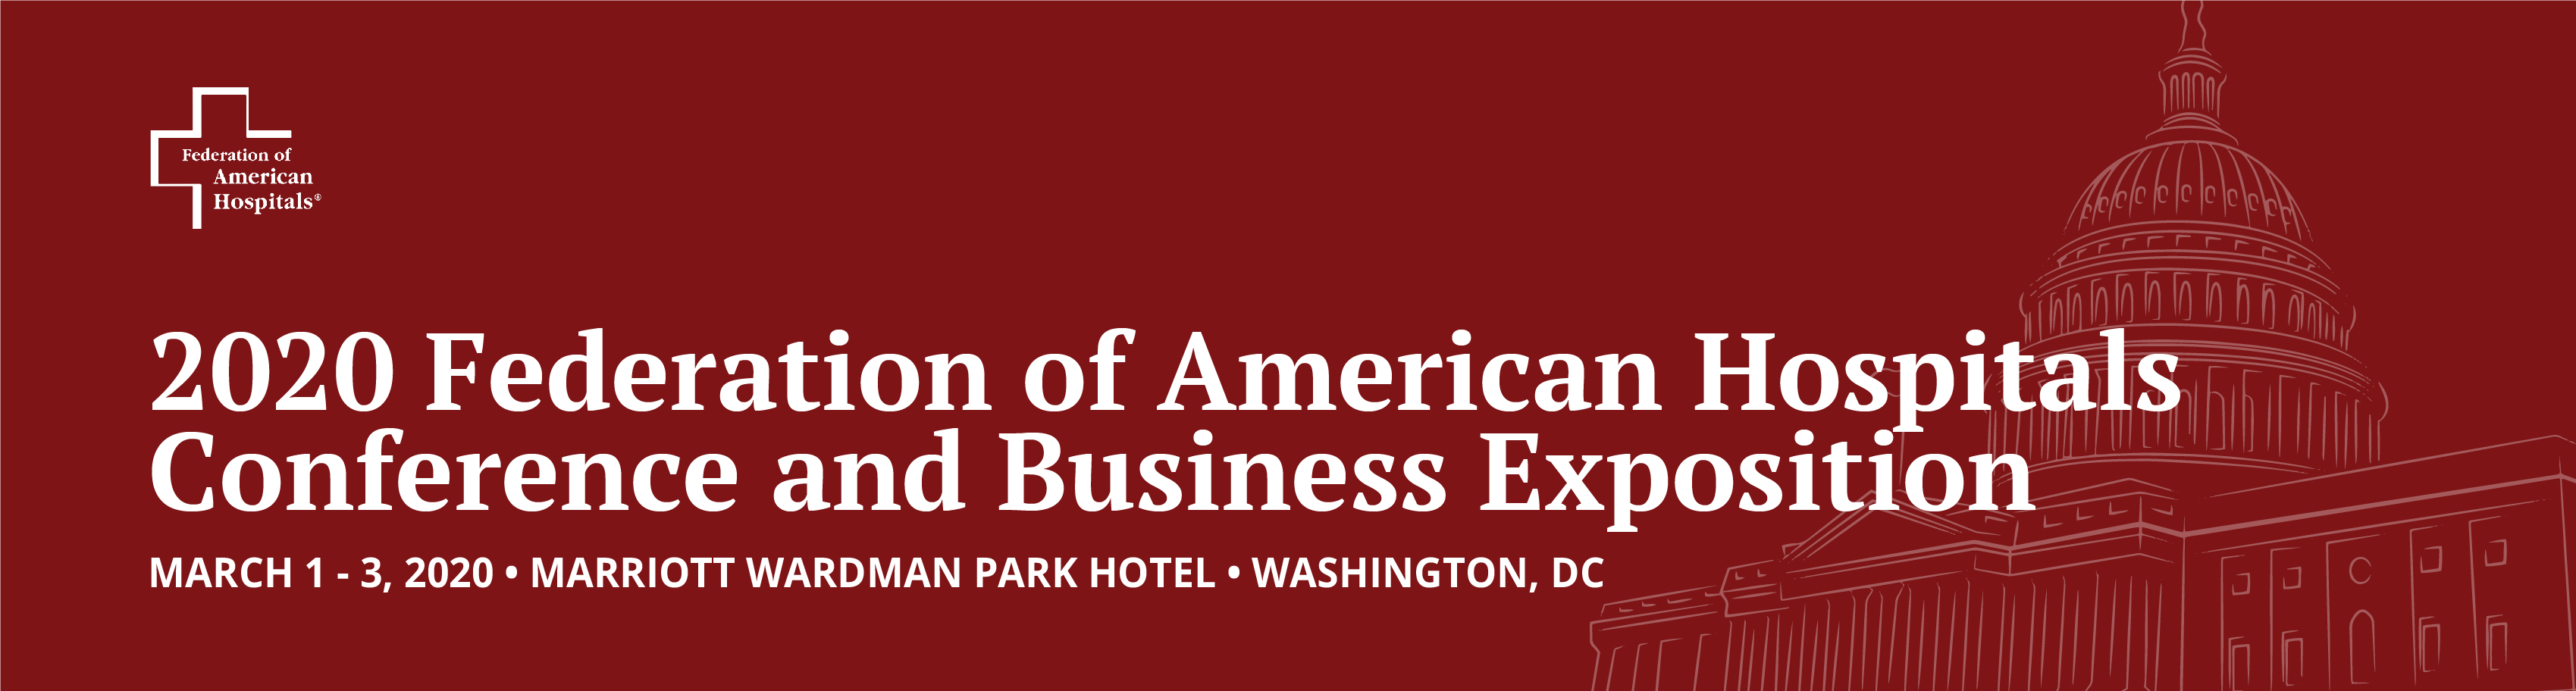 2020 Federation of American Hospitals Conference and Business Exposition